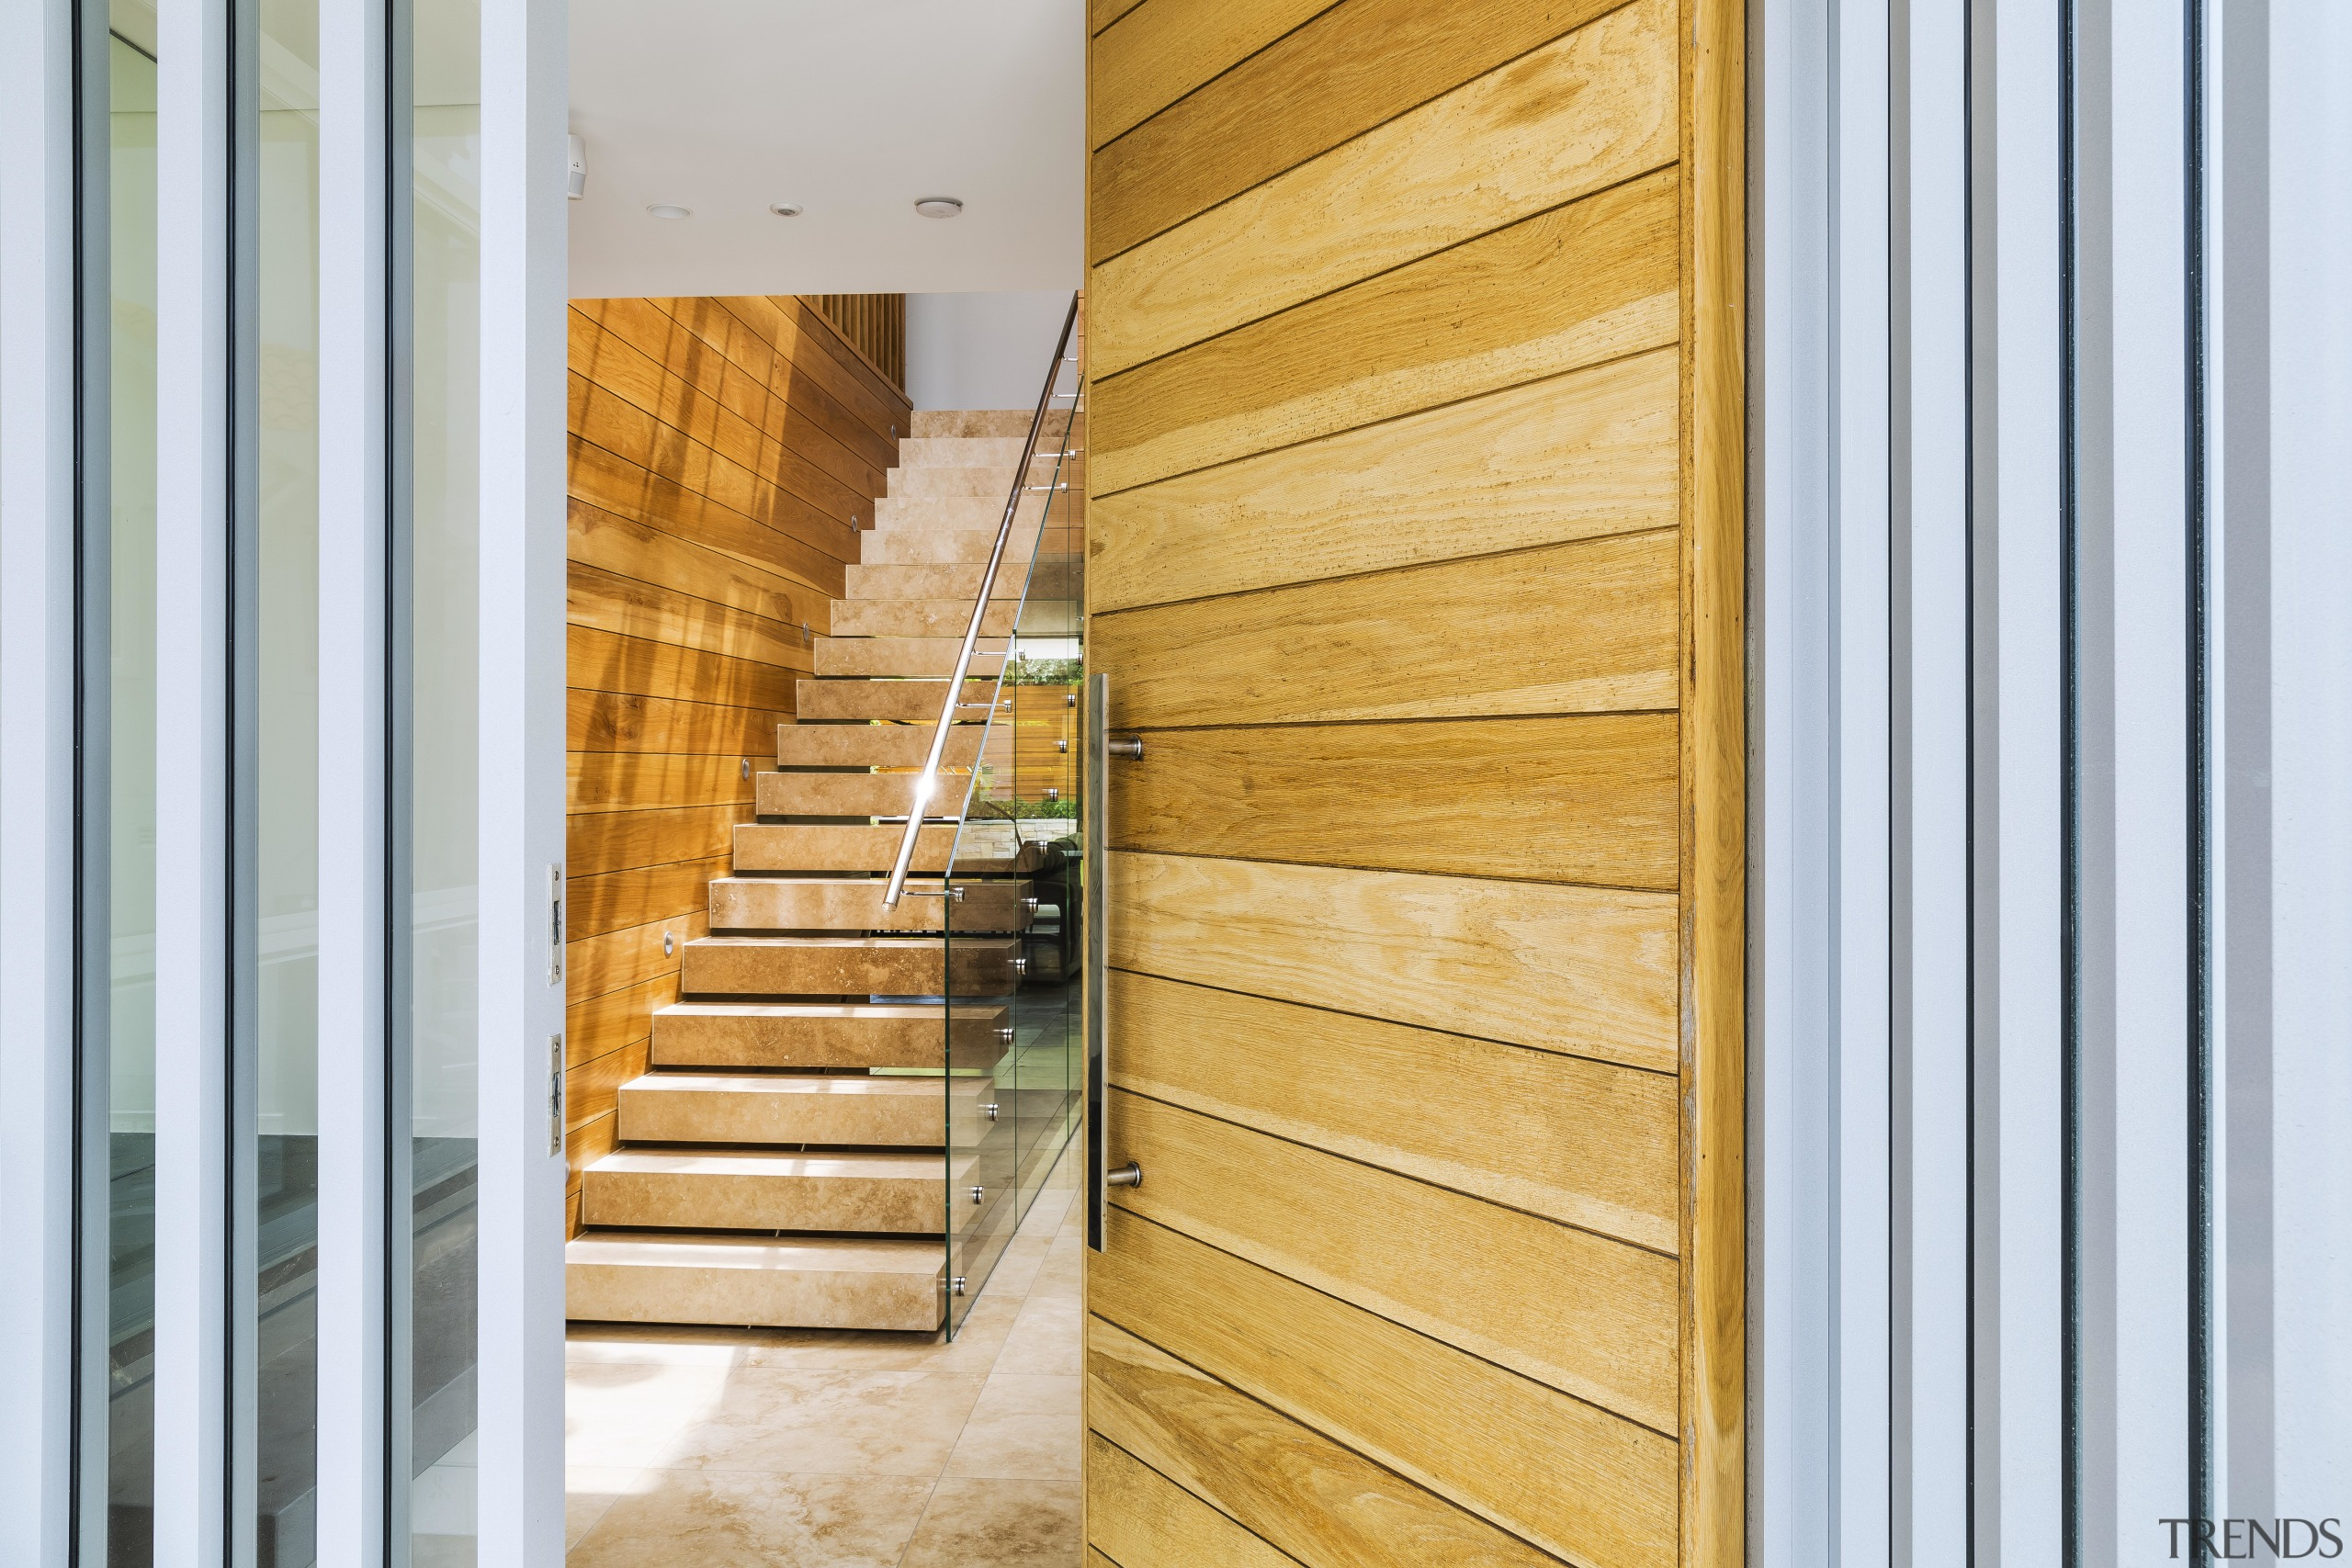 A timber front door provides an early touch architecture, home, house, interior design, wood, Timber, stairway, Giles & Tribe Architecture, Mark Broadley